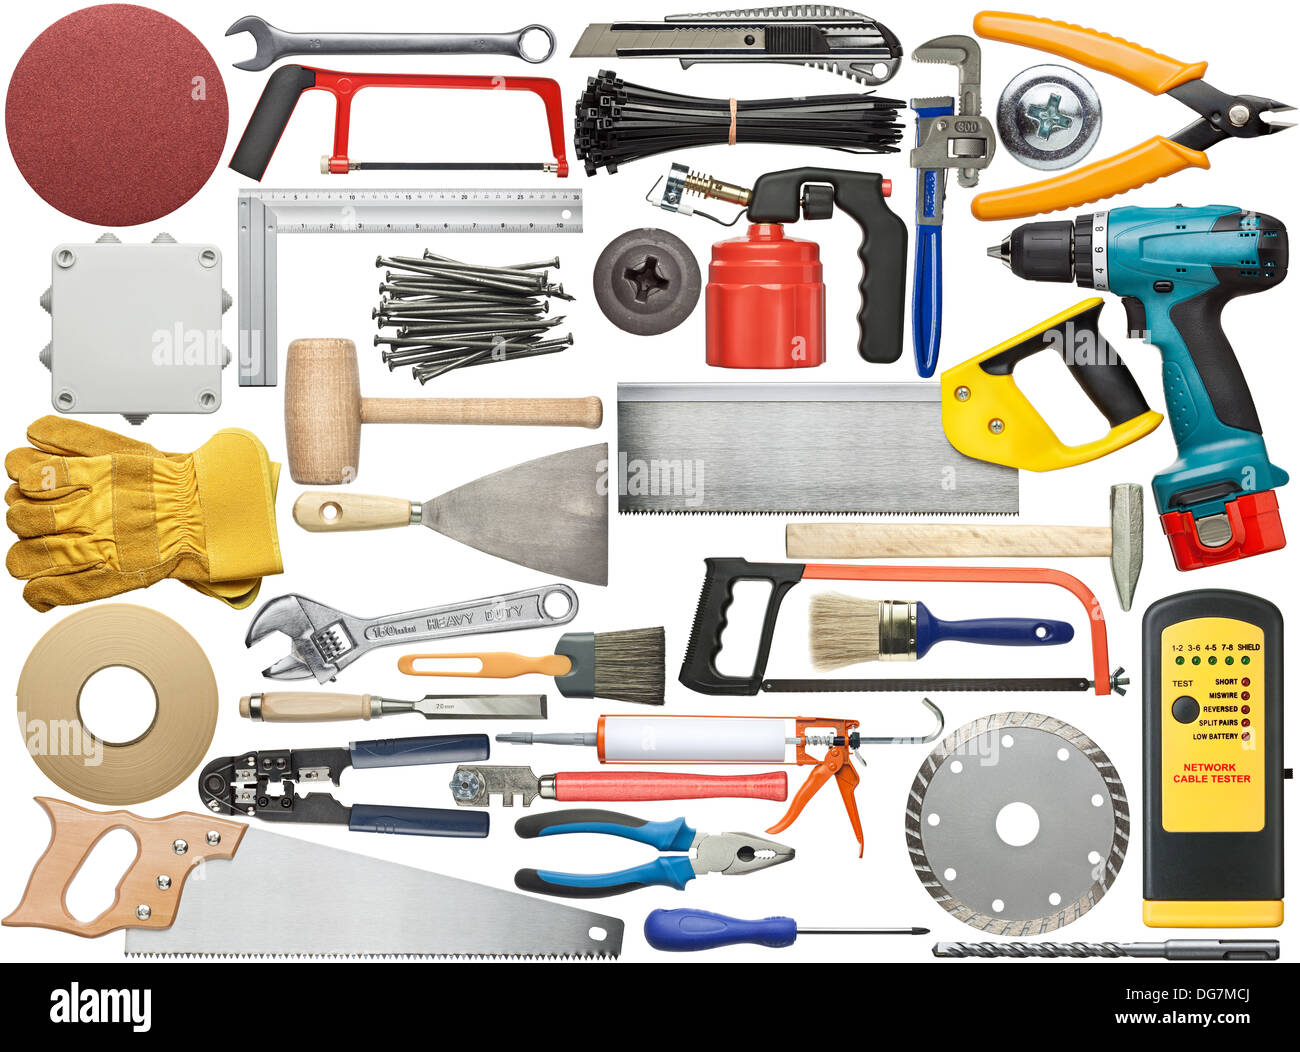 Tools for wood, metal and other construction work. - Stock Image